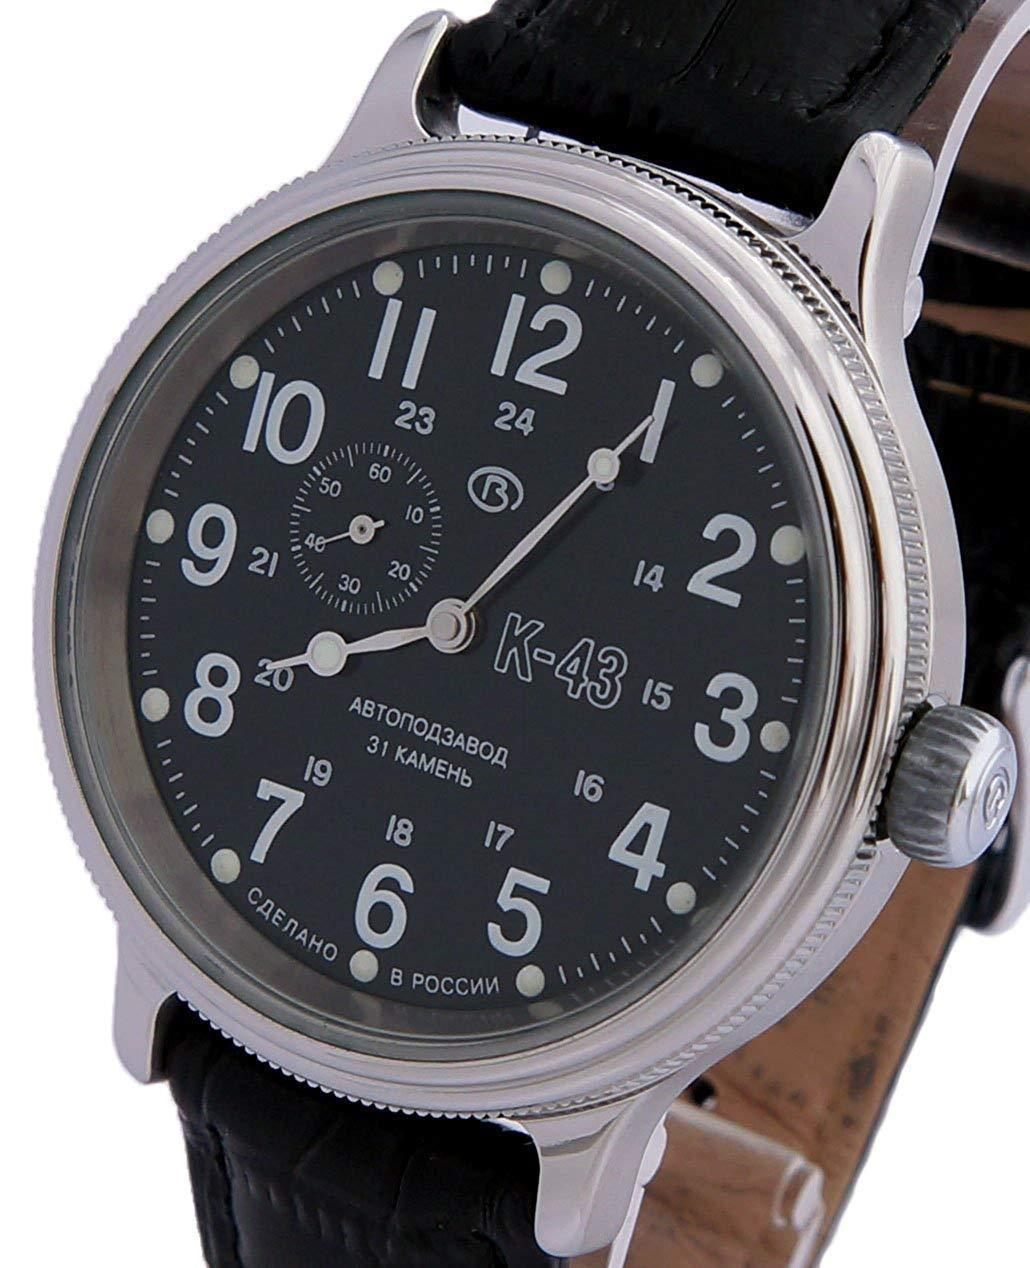 Vostok Retro Kirovskie K43 540854 /2415 Russian Classic Watch Black 1943